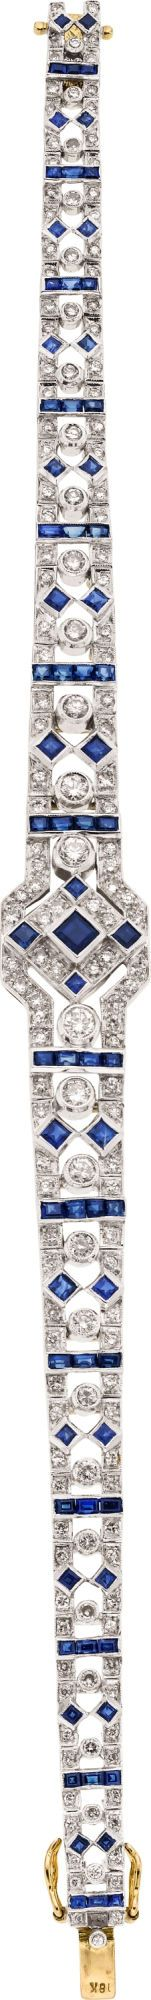 Diamond, Sapphire, Gold Bracelet  The bracelet features full-cut diamonds weighing a total of approximately 1.50 carats, enhanced by square and baguette-cut sapphires weighing a total of approximately 1.50 carats, set in 18k gold having a rhodium finish. Art Deco or Art Deco style.